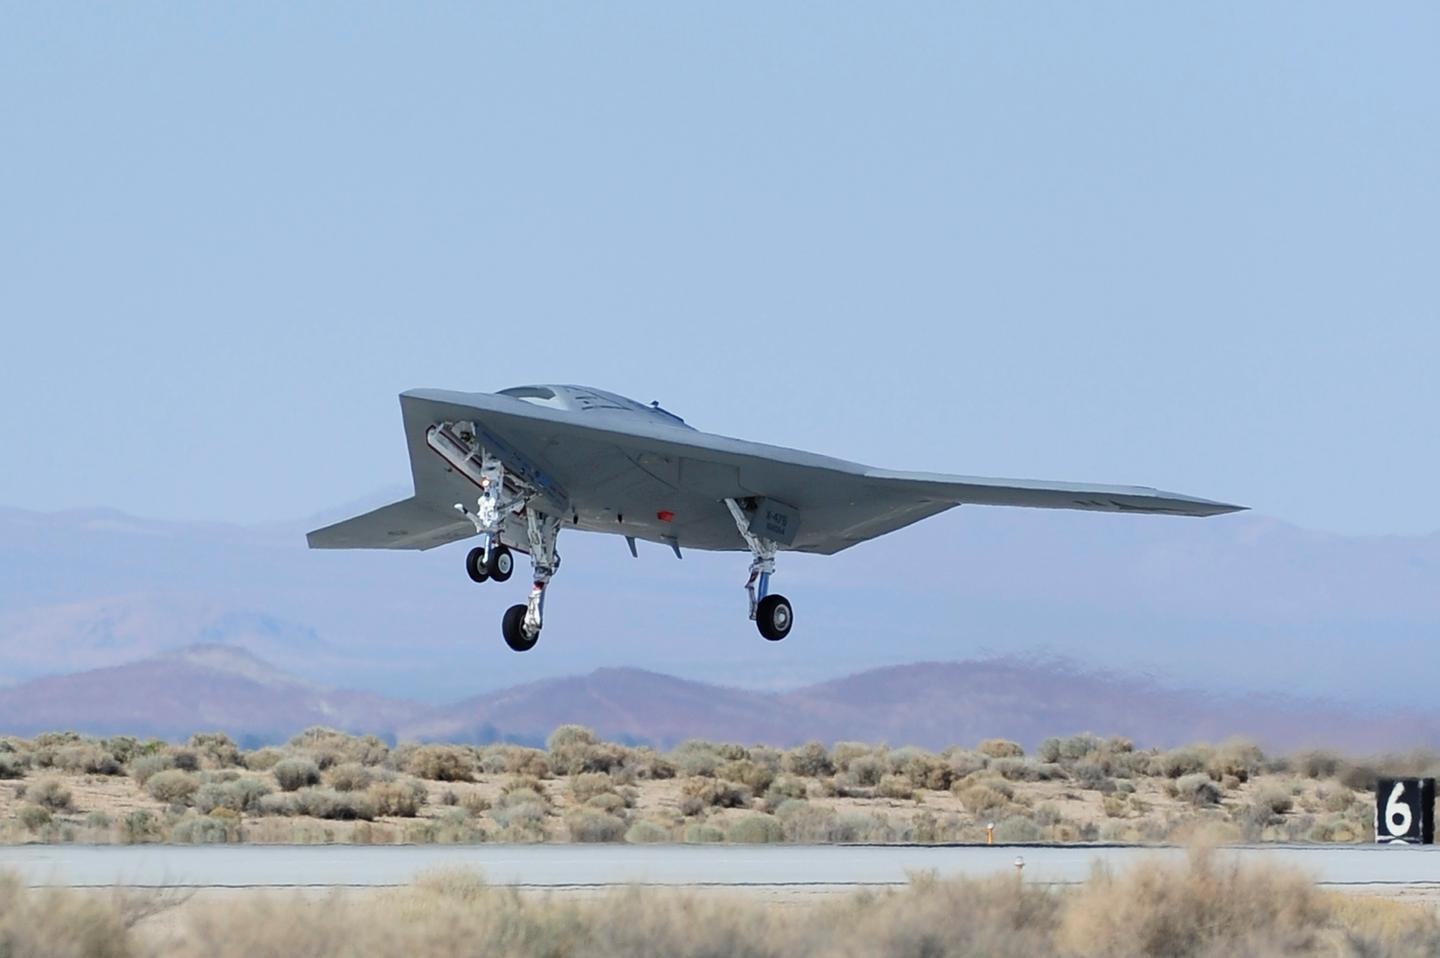 The second Northrop Grumman-built X-47B unmanned aircraft lifts off for one of its final flights during the air worthiness test phase at EAFB